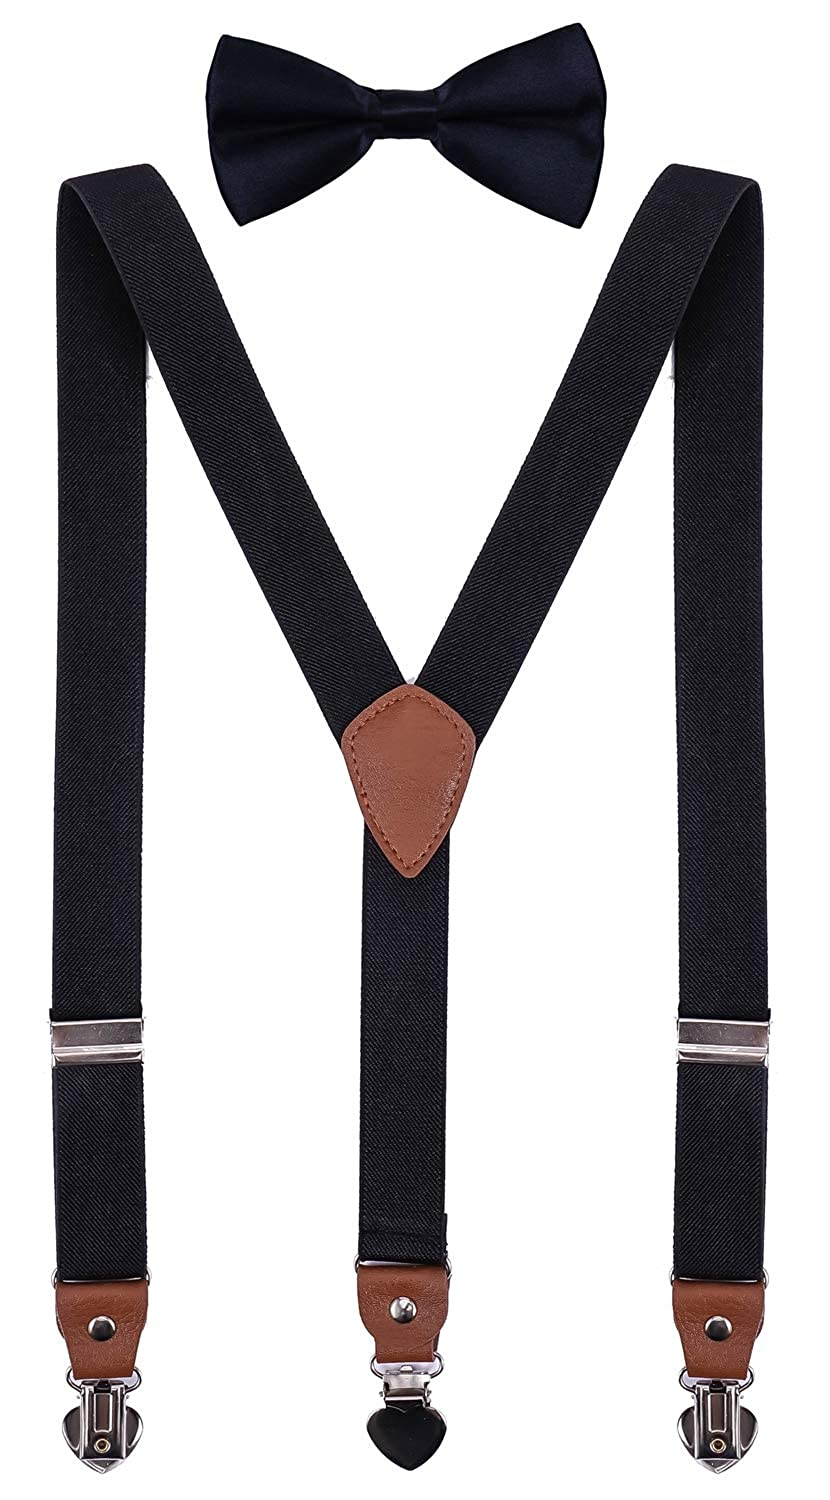 SUNNYTREE Mens Boys Suspenders Adjustable Y Back with Bow Tie Set for Wedding Party